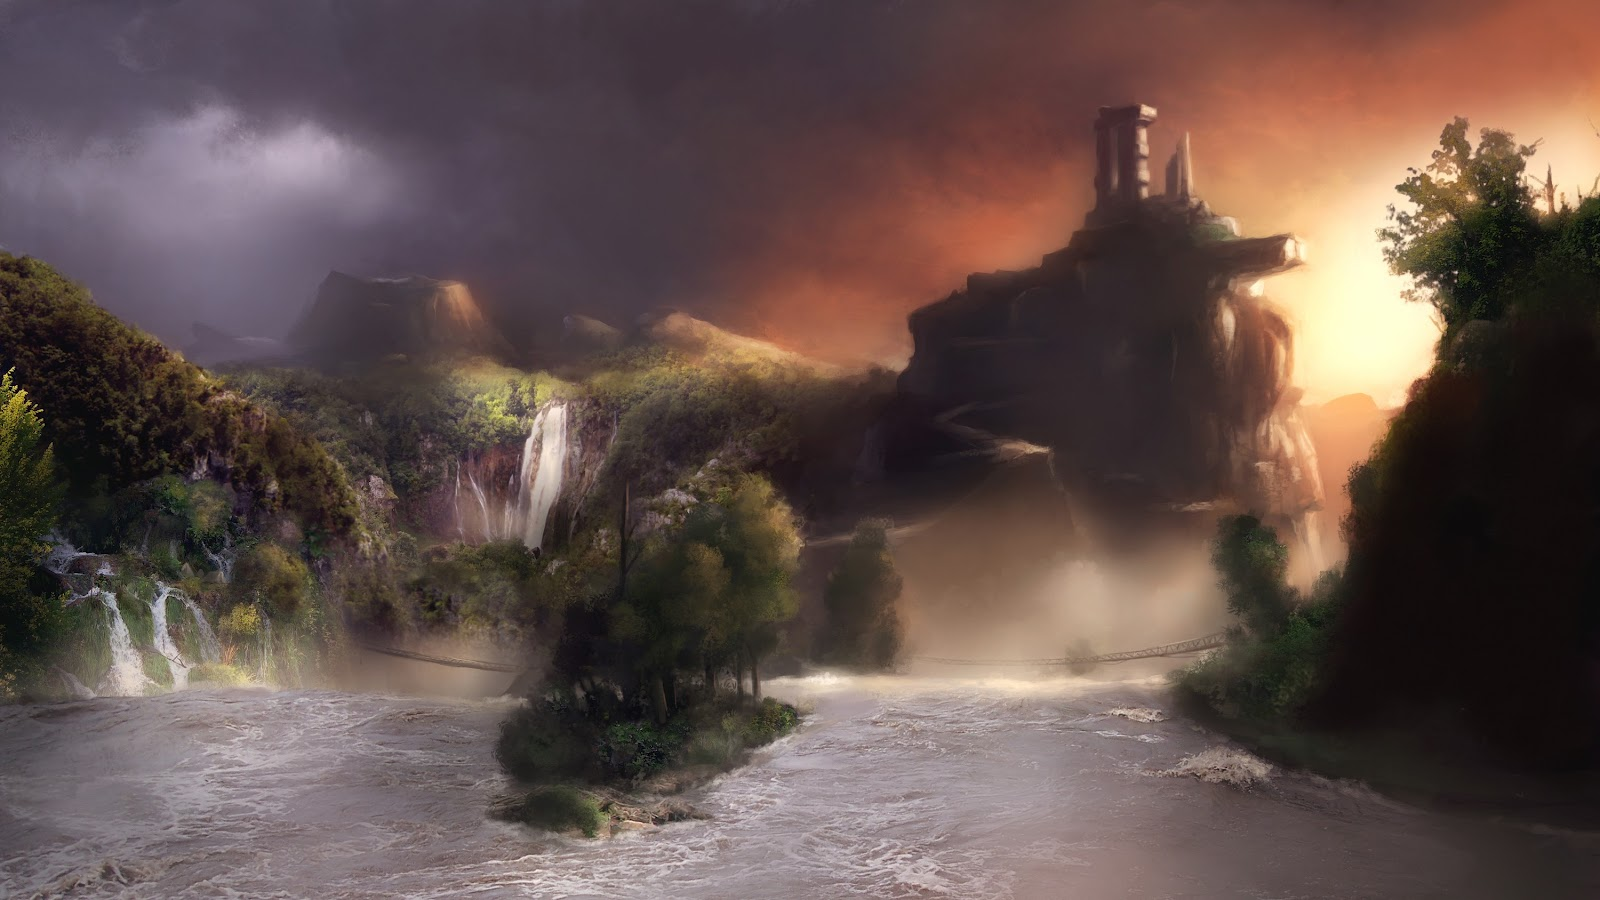 scenery age of conan wallpaper background image img picture pic 1600x900